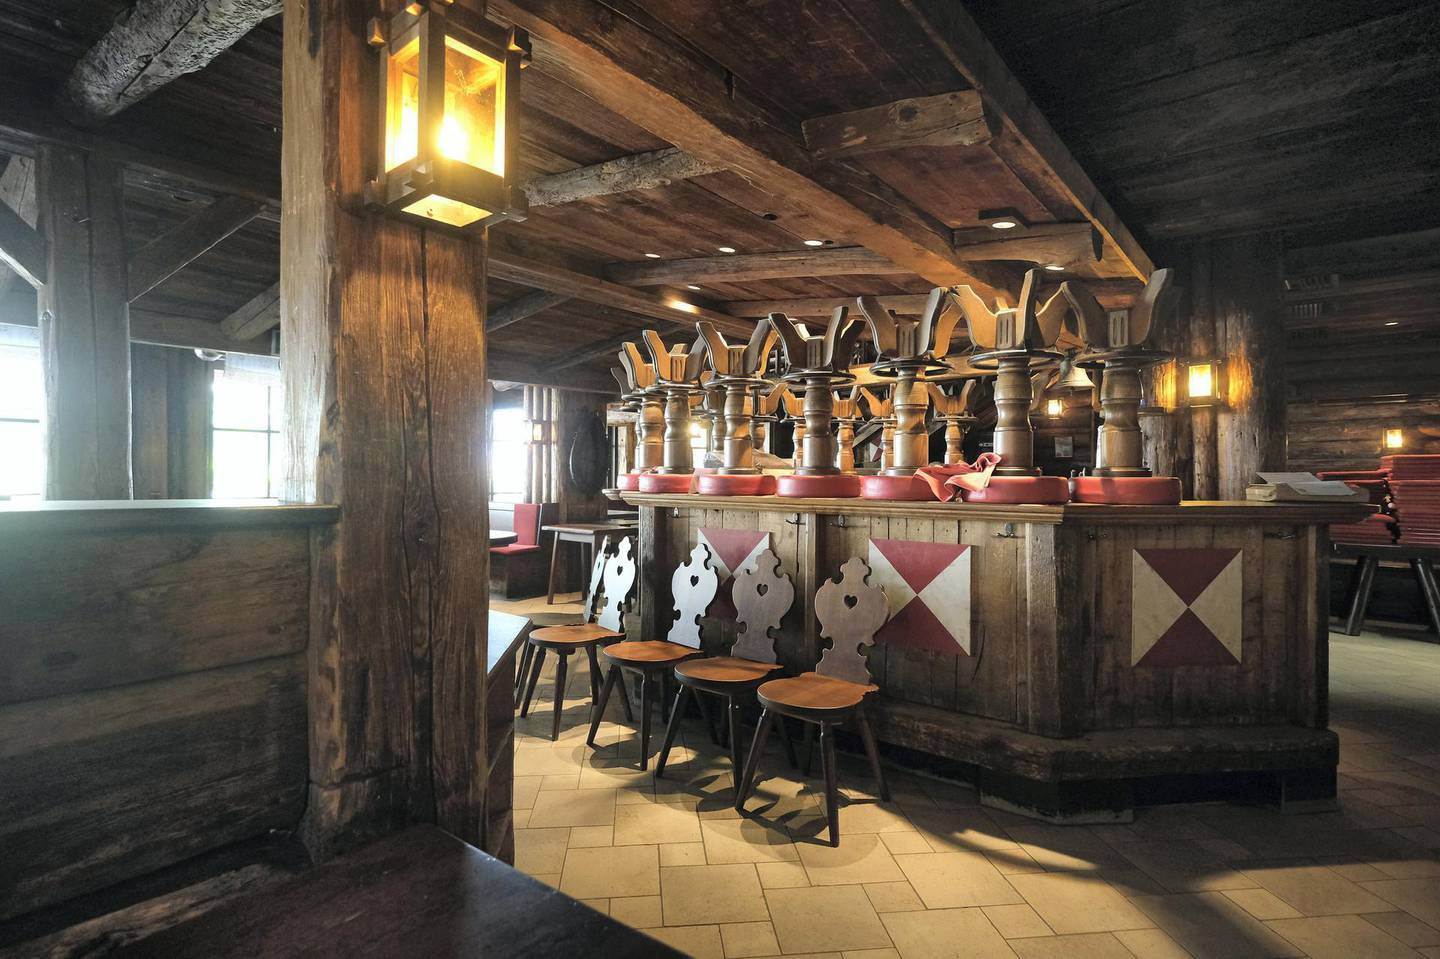 ISCHGL, AUSTRIA - SEPTEMBER 11: The Kitzloch apres-ski bar and restaurant stands closed for the summer on September 11, 2020 in Ischgl, Austria. Ischgl became a superspreader locality for coronavirus infections among winter vacationers last March and authorities have pointed to crowded apres-ski venues as a strong contributing factor. At least 28 people died and 6,000 people world-wide have registered with an Austrian lawyer claiming they think they were infected in Ischgl. Meanwhile Ischgl's hotels, restaurants, ski lift operator and other businesses that are dependent on tourism are taking measures they hope will bring tourists back for the coming winter ski season and minimize the risk of Covid infections.   (Photo by Sean Gallup/Getty Images)